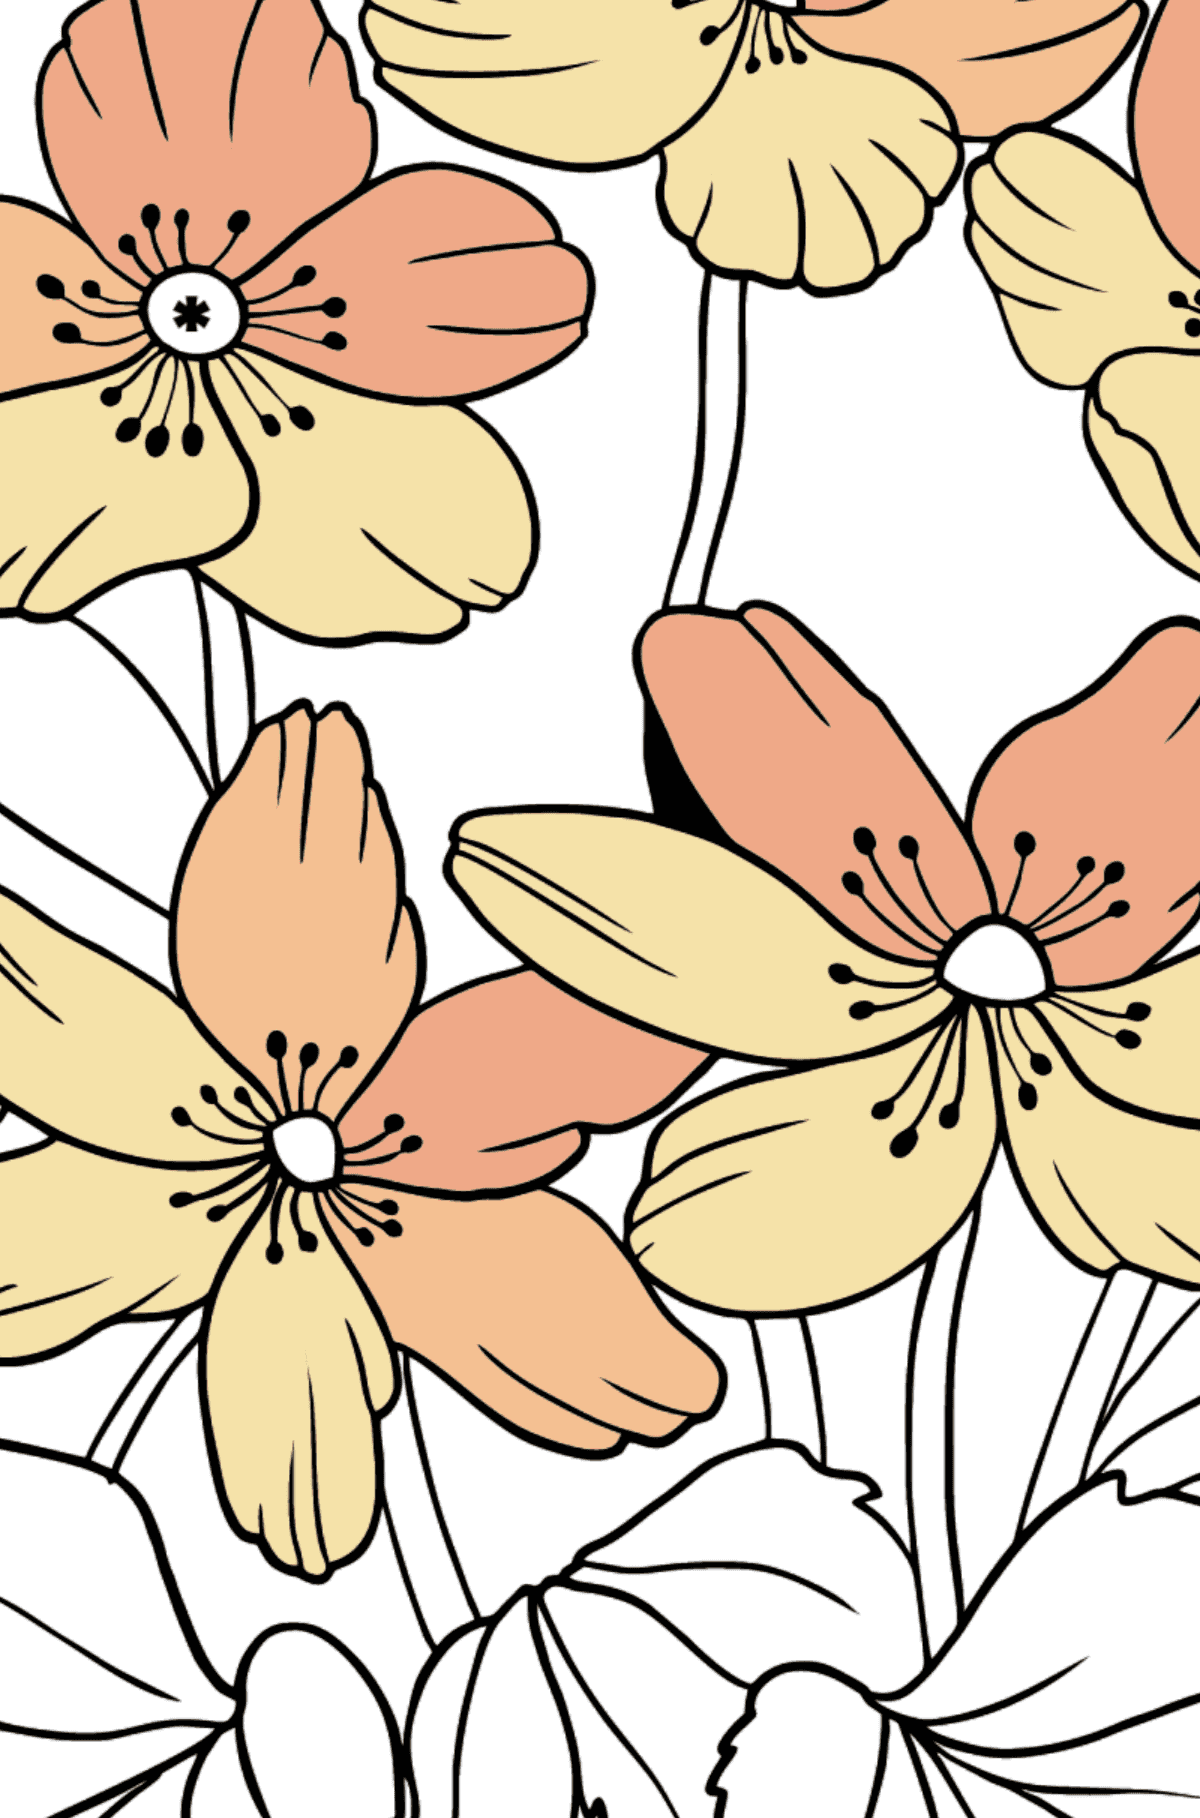 Flower Coloring Page - A Pastel Yellow Windflower - Coloring by Symbols for Kids